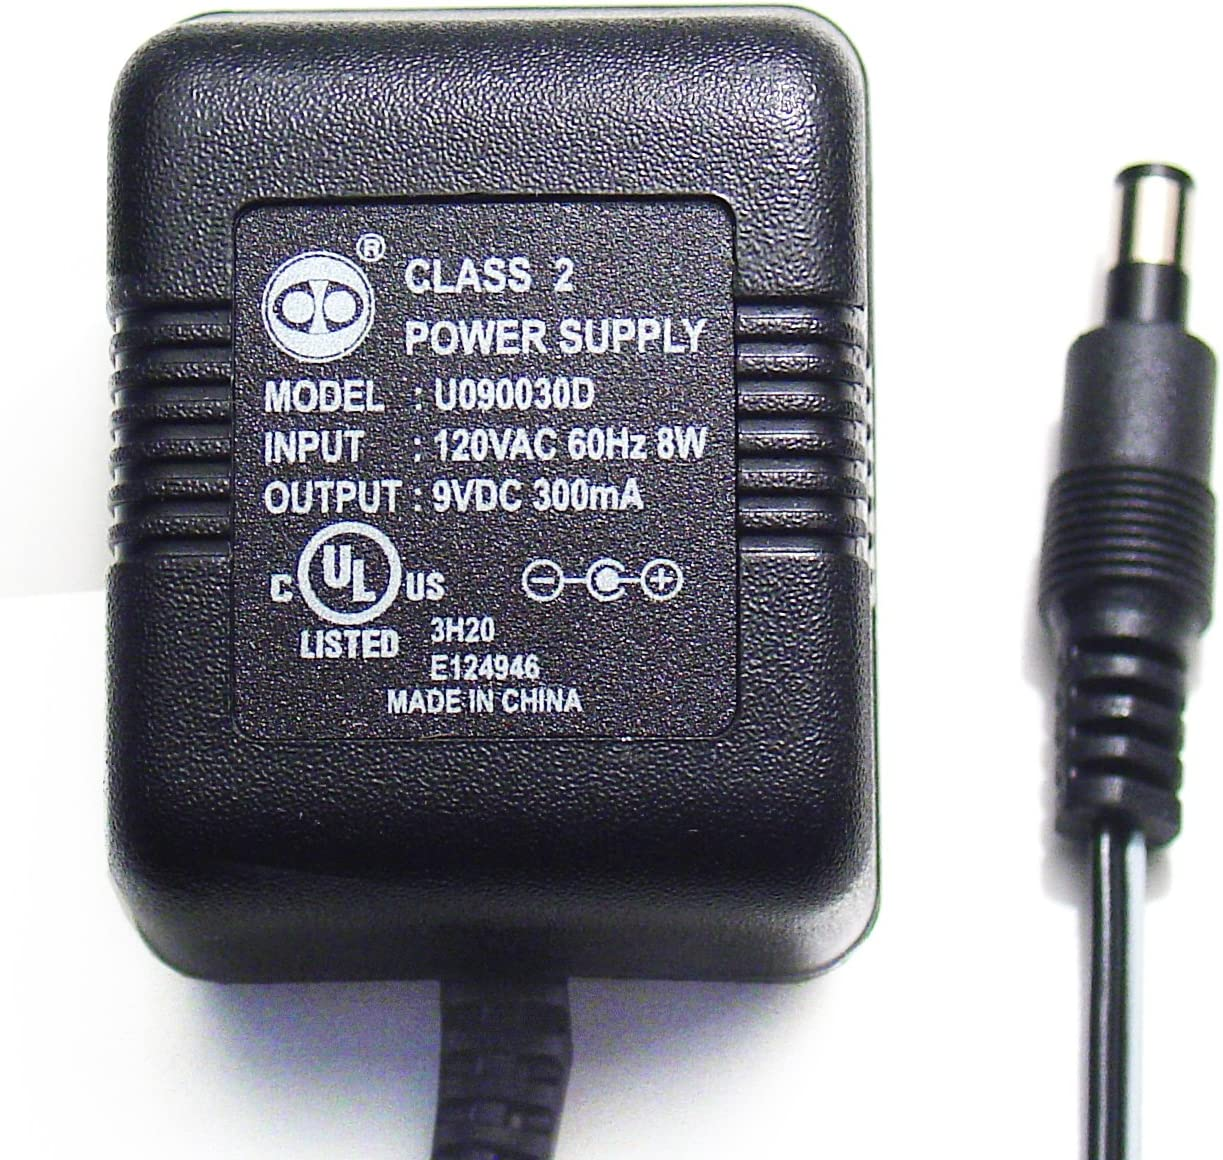 AC-DC ADAPTER 12 VOLTS DC @ 300mA 2.5mm DC POWER PLUG WITH POSITIVE CENTER